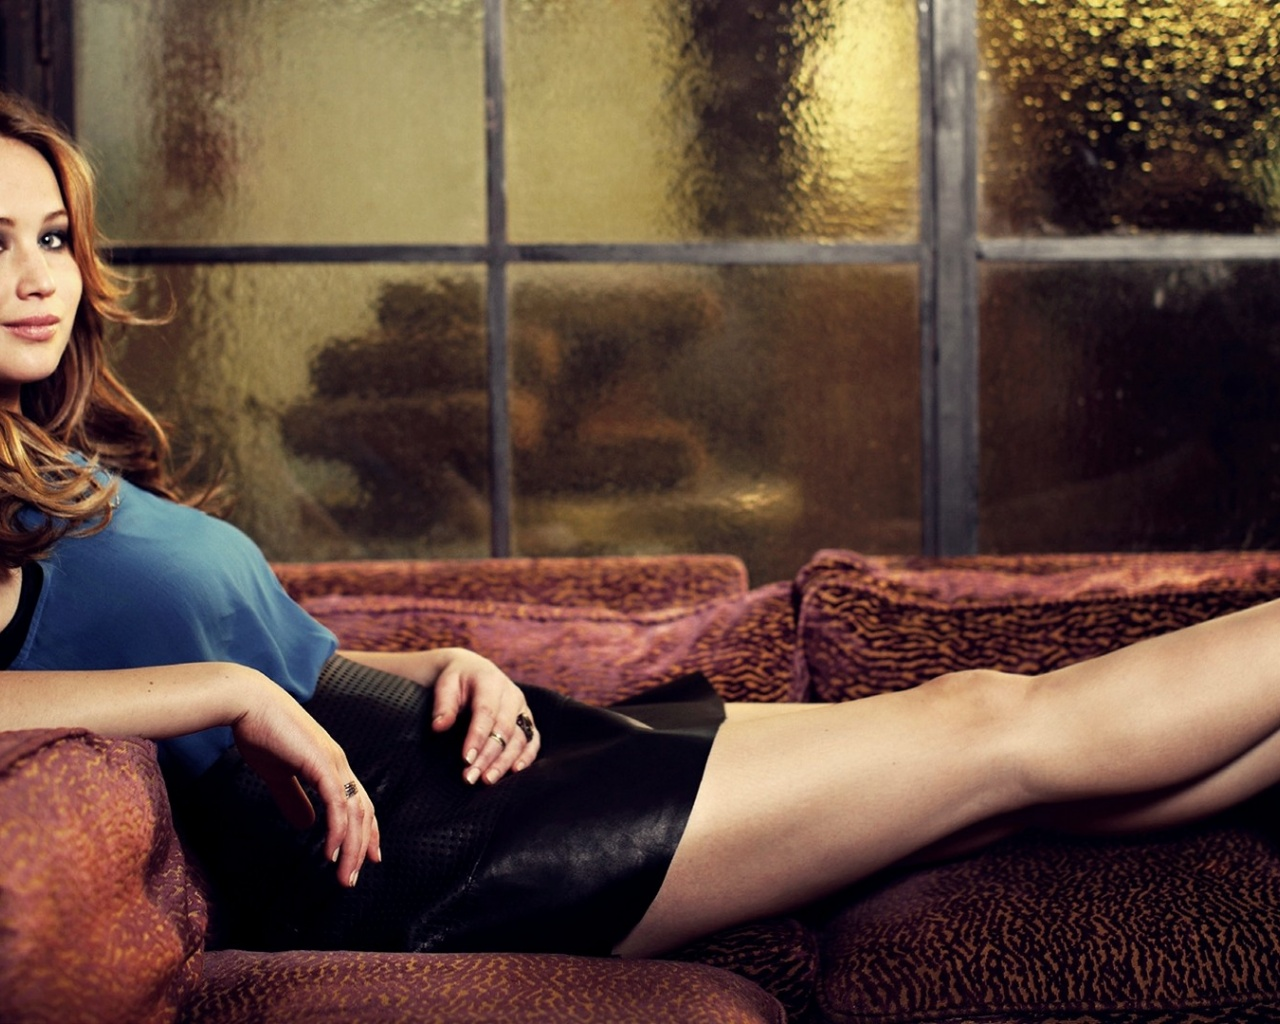 click to free download the wallpaper--Amazing TV & Movie Image, Jennifer Lawrence Lying on Couch, Heavy Rain Outside 1280X1024 free wallpaper download